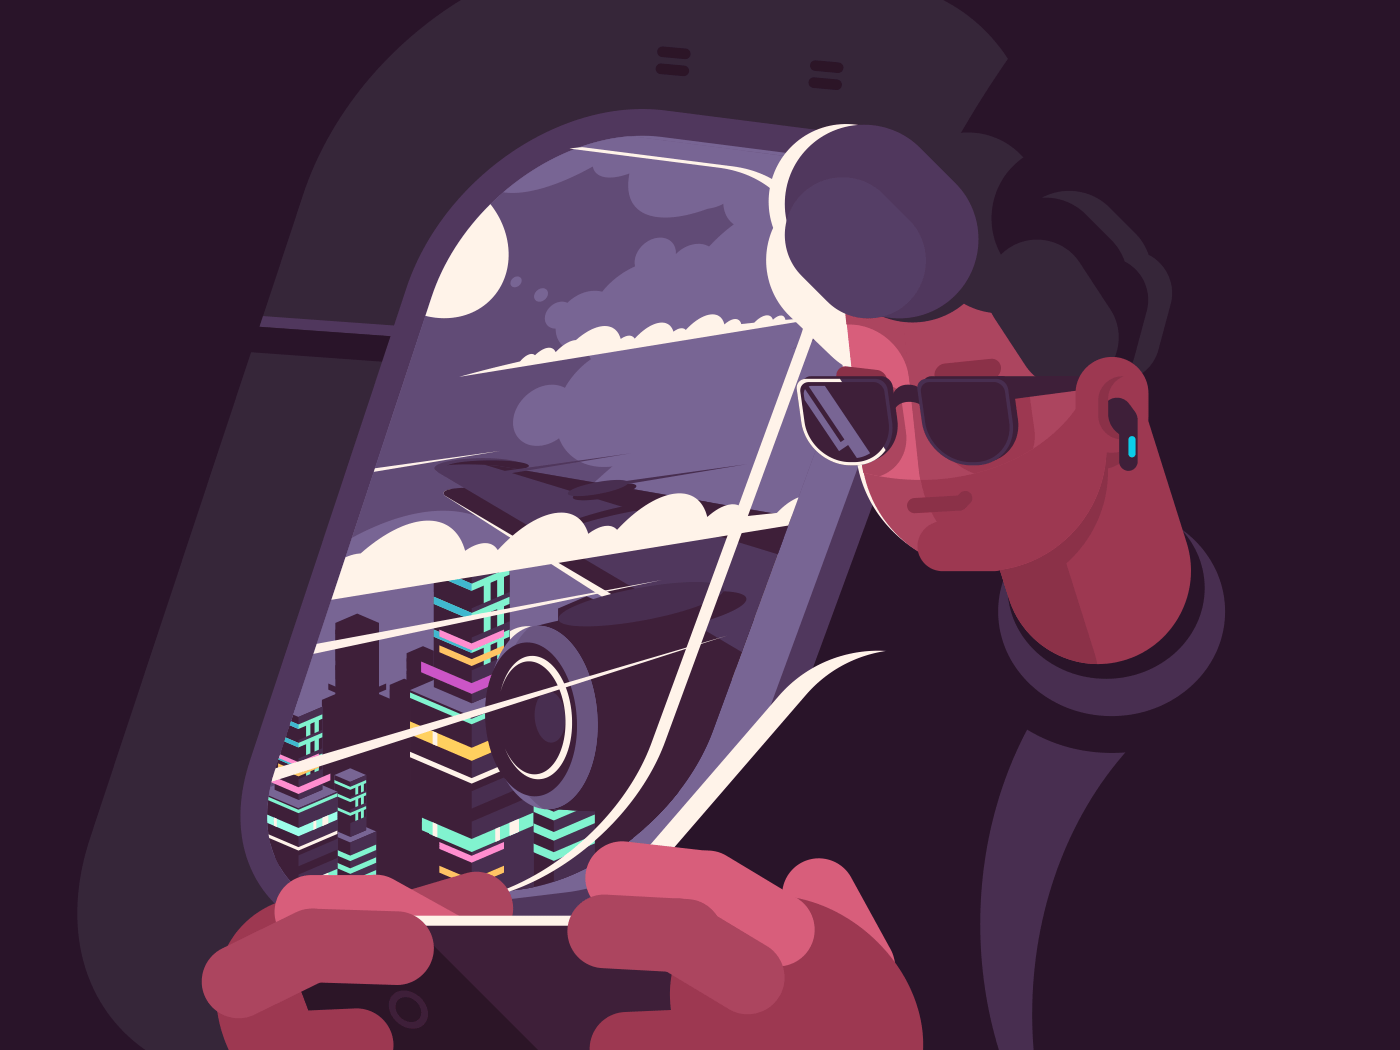 Man in plane near porthole. Passenger plane flies over city. Vector illustration